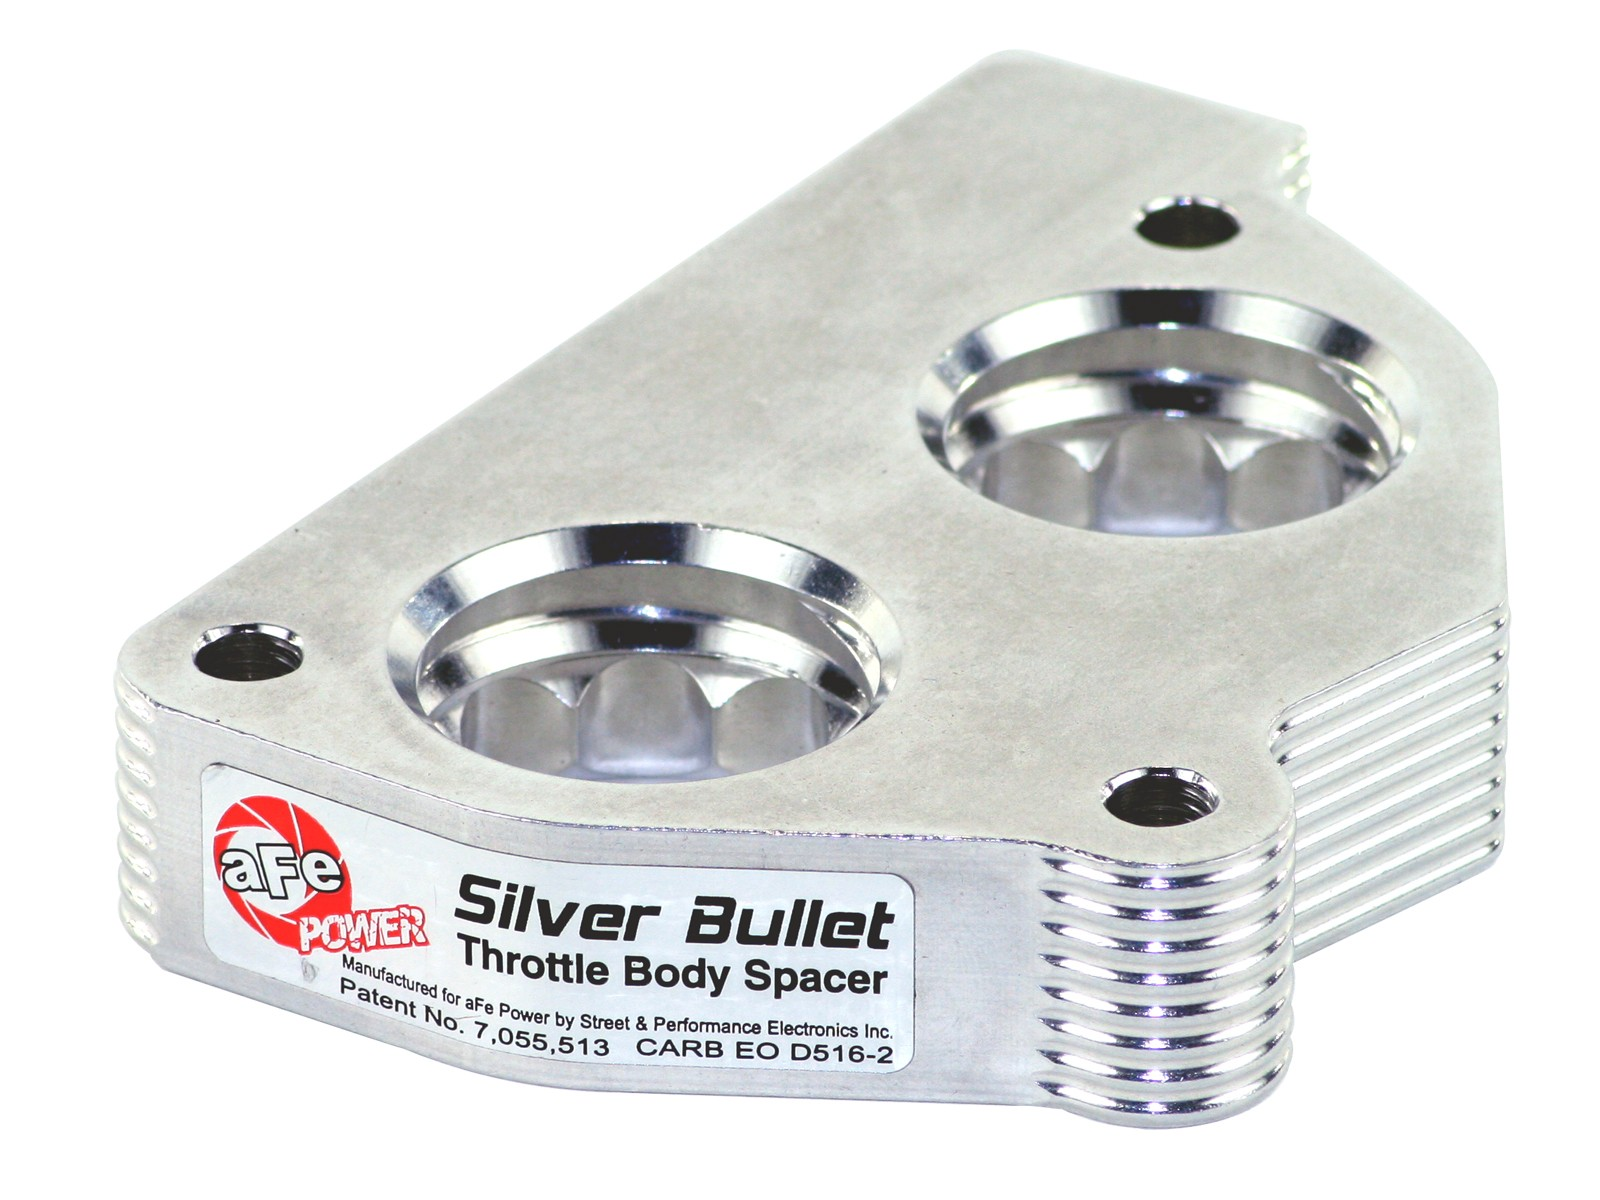 aFe Power Silver Bullet Throttle Body Spacer For 05-15 Toyota 4.0L V6 Truck SUV